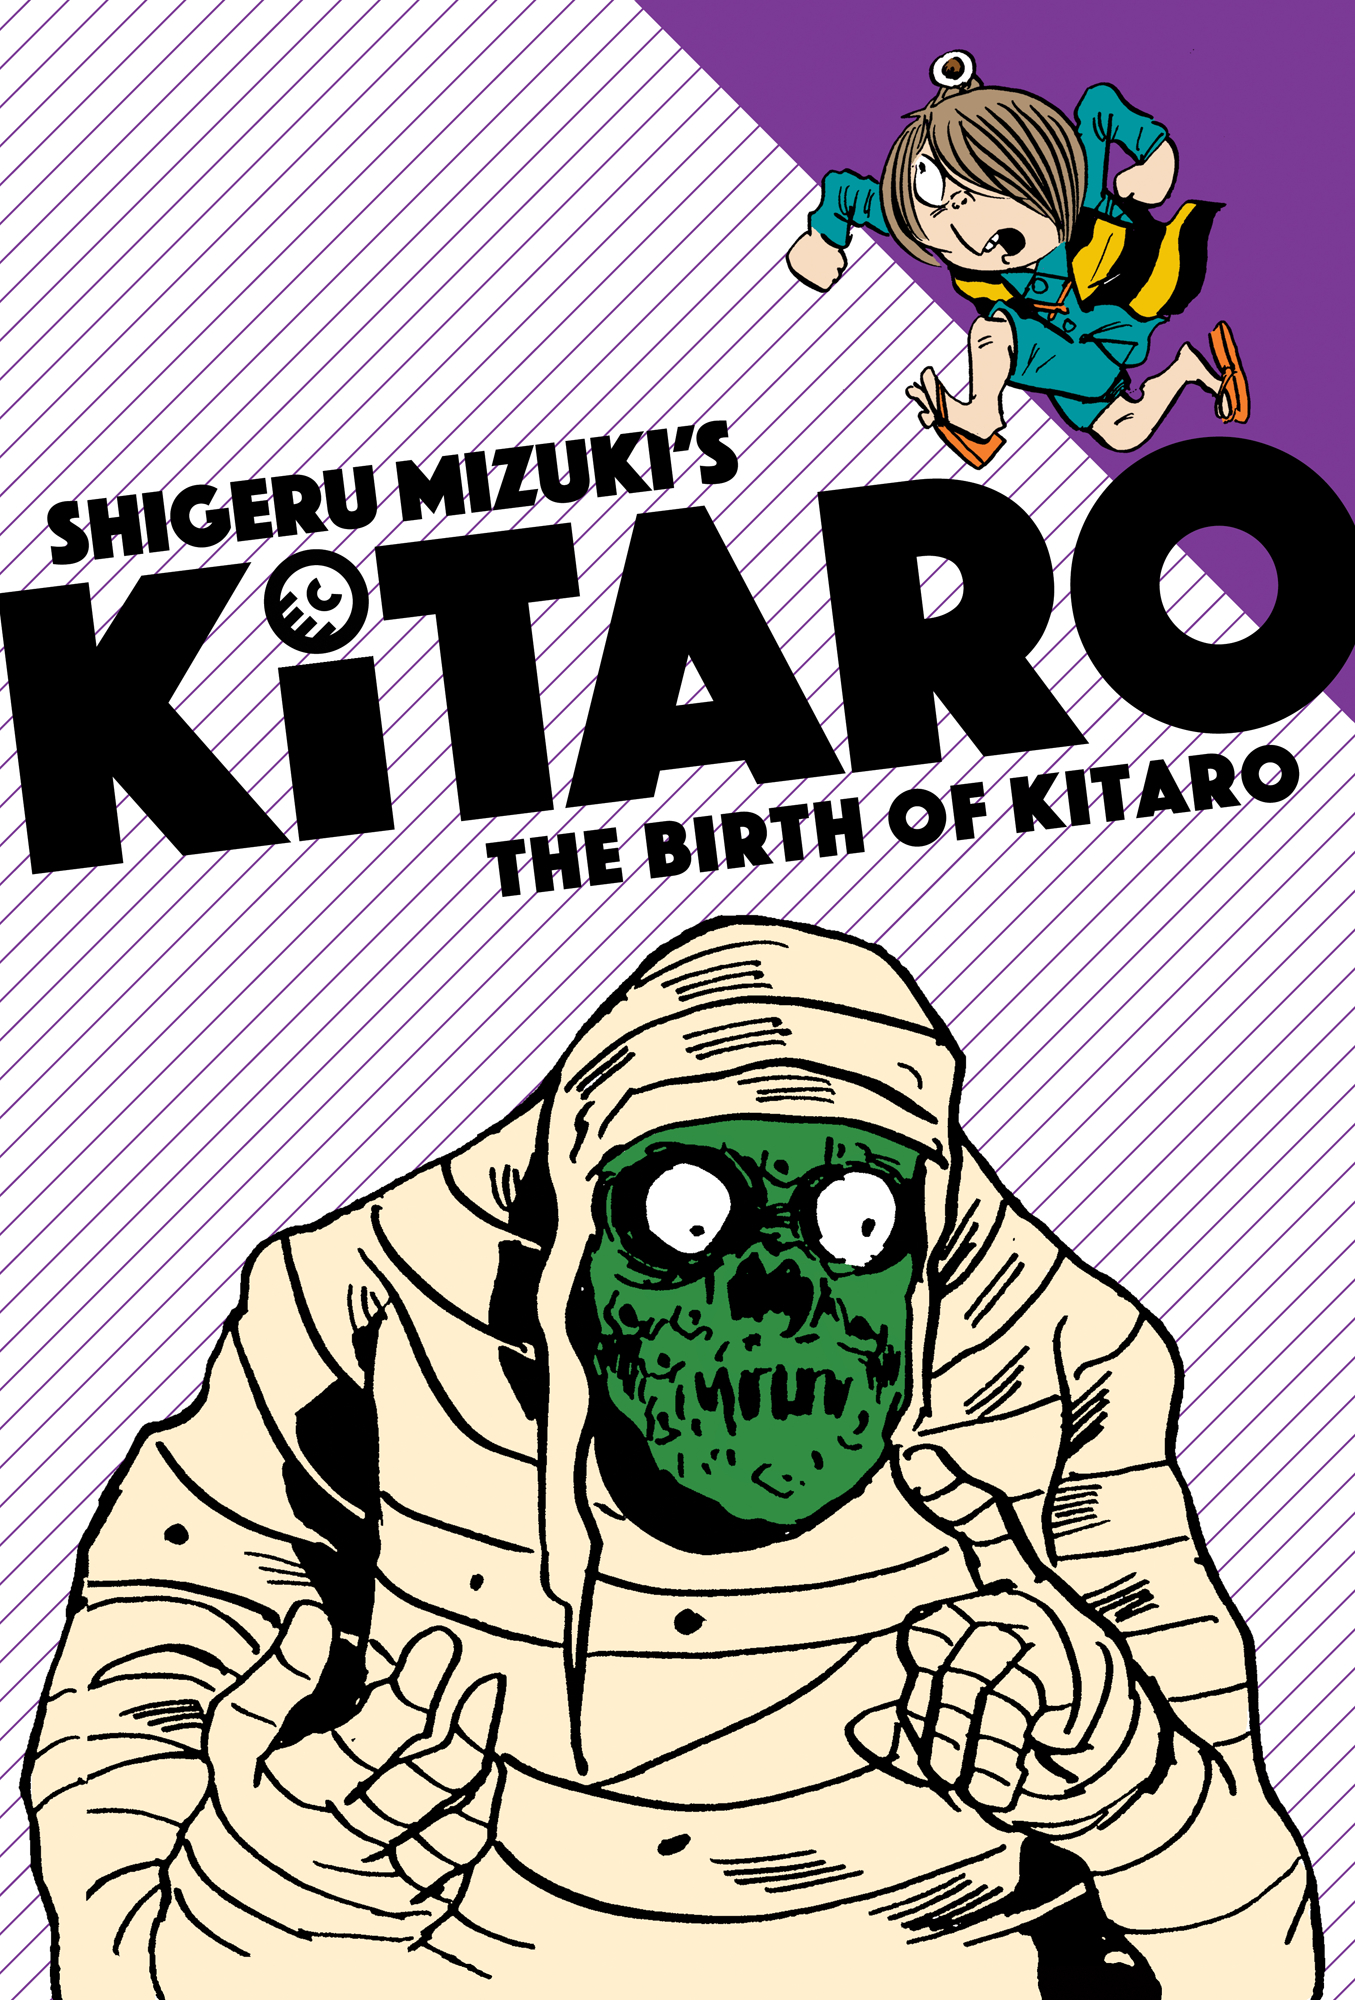 KITARO GN VOL 01 BIRTH OF KITARO (APR161577)